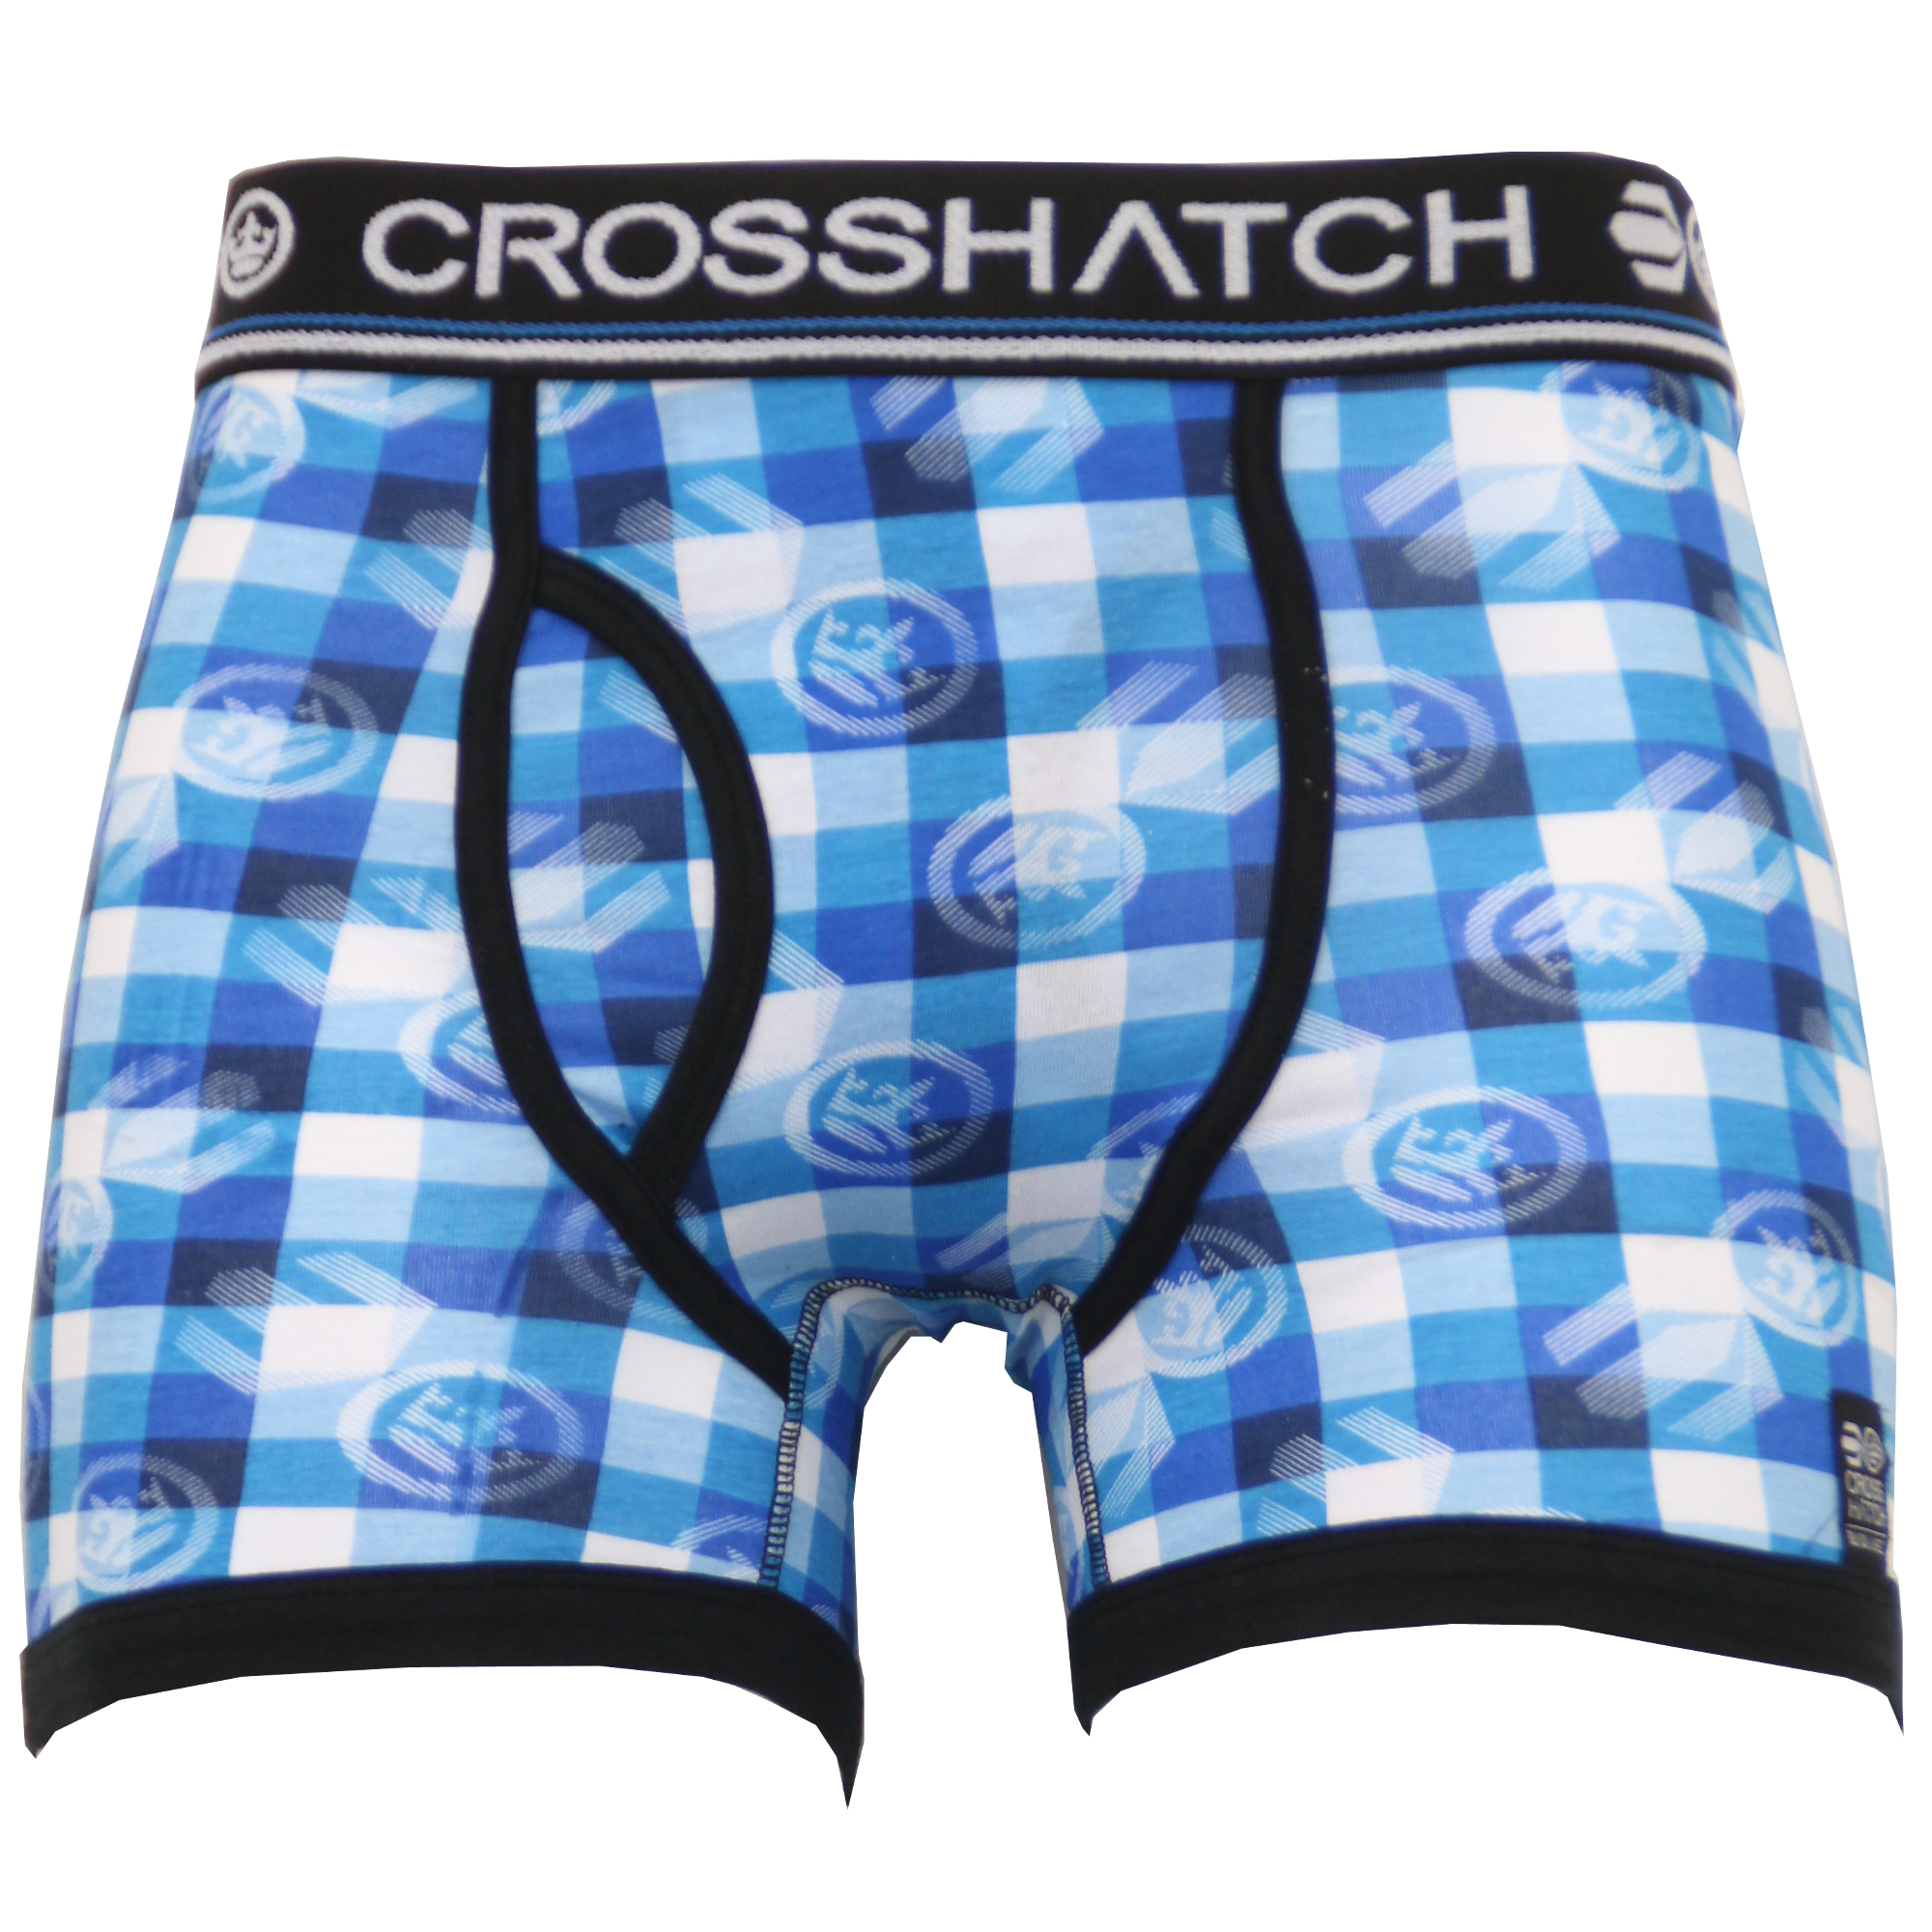 thumbnail 4 - Mens Boxer Crosshatch TWO 2 Pack Underwear Trunks Shorts Plain Check Casual New